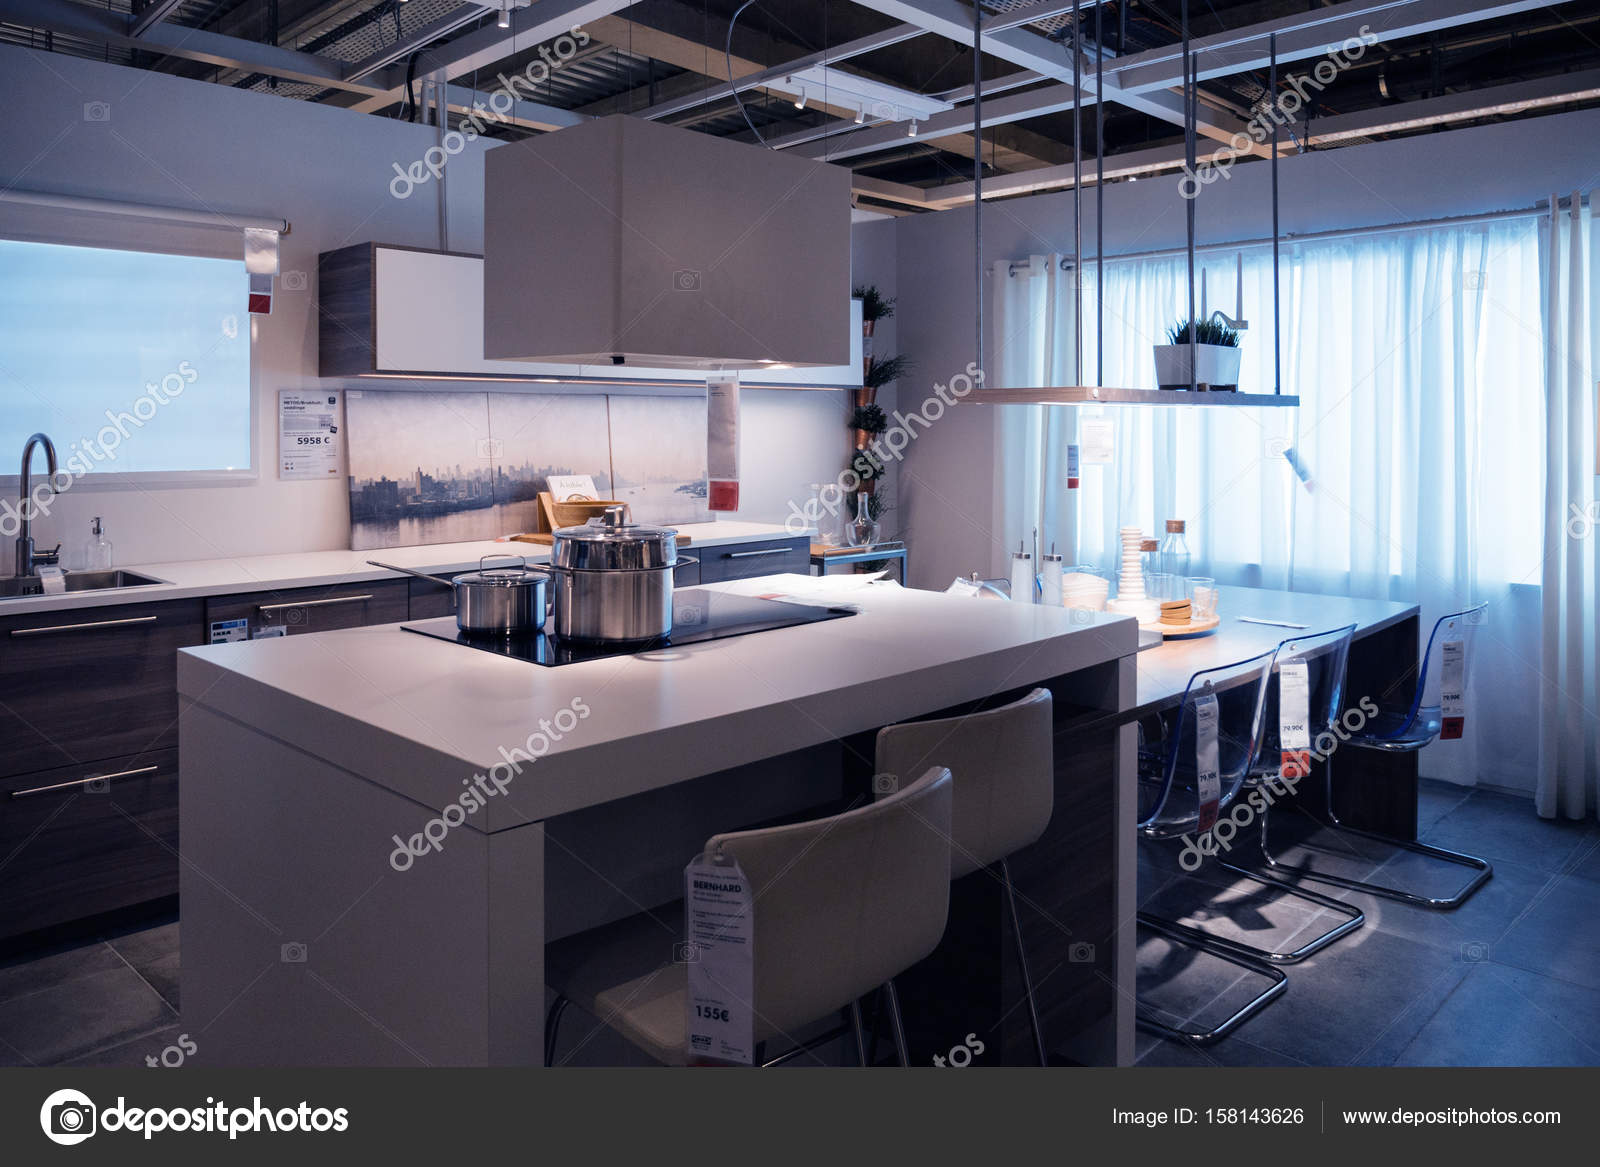 IKEA Küche Shop Modell Home Shopping U2014 Stockfoto